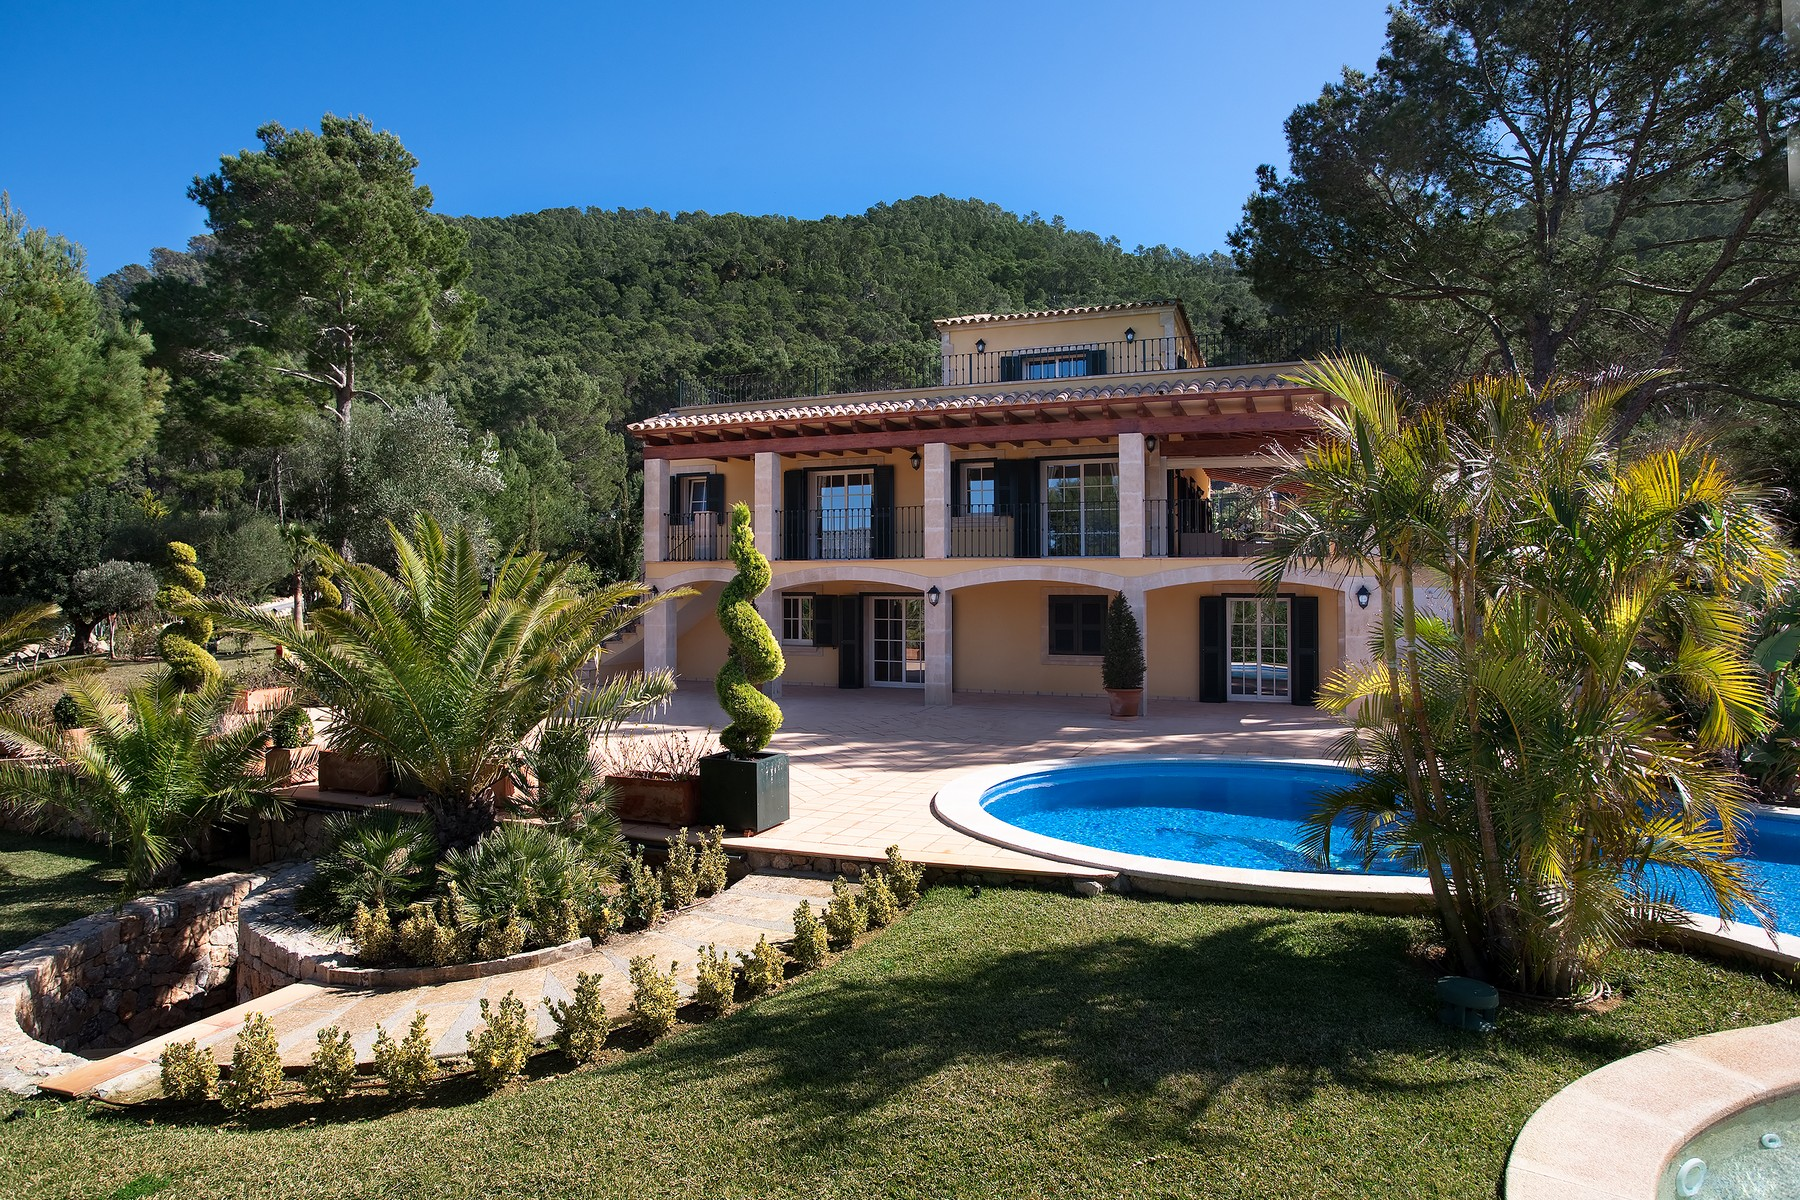 Maison unifamiliale pour l Vente à Luxury property with harbour views in Port Andratx Port Andratx, Majorque, 07157 Espagne